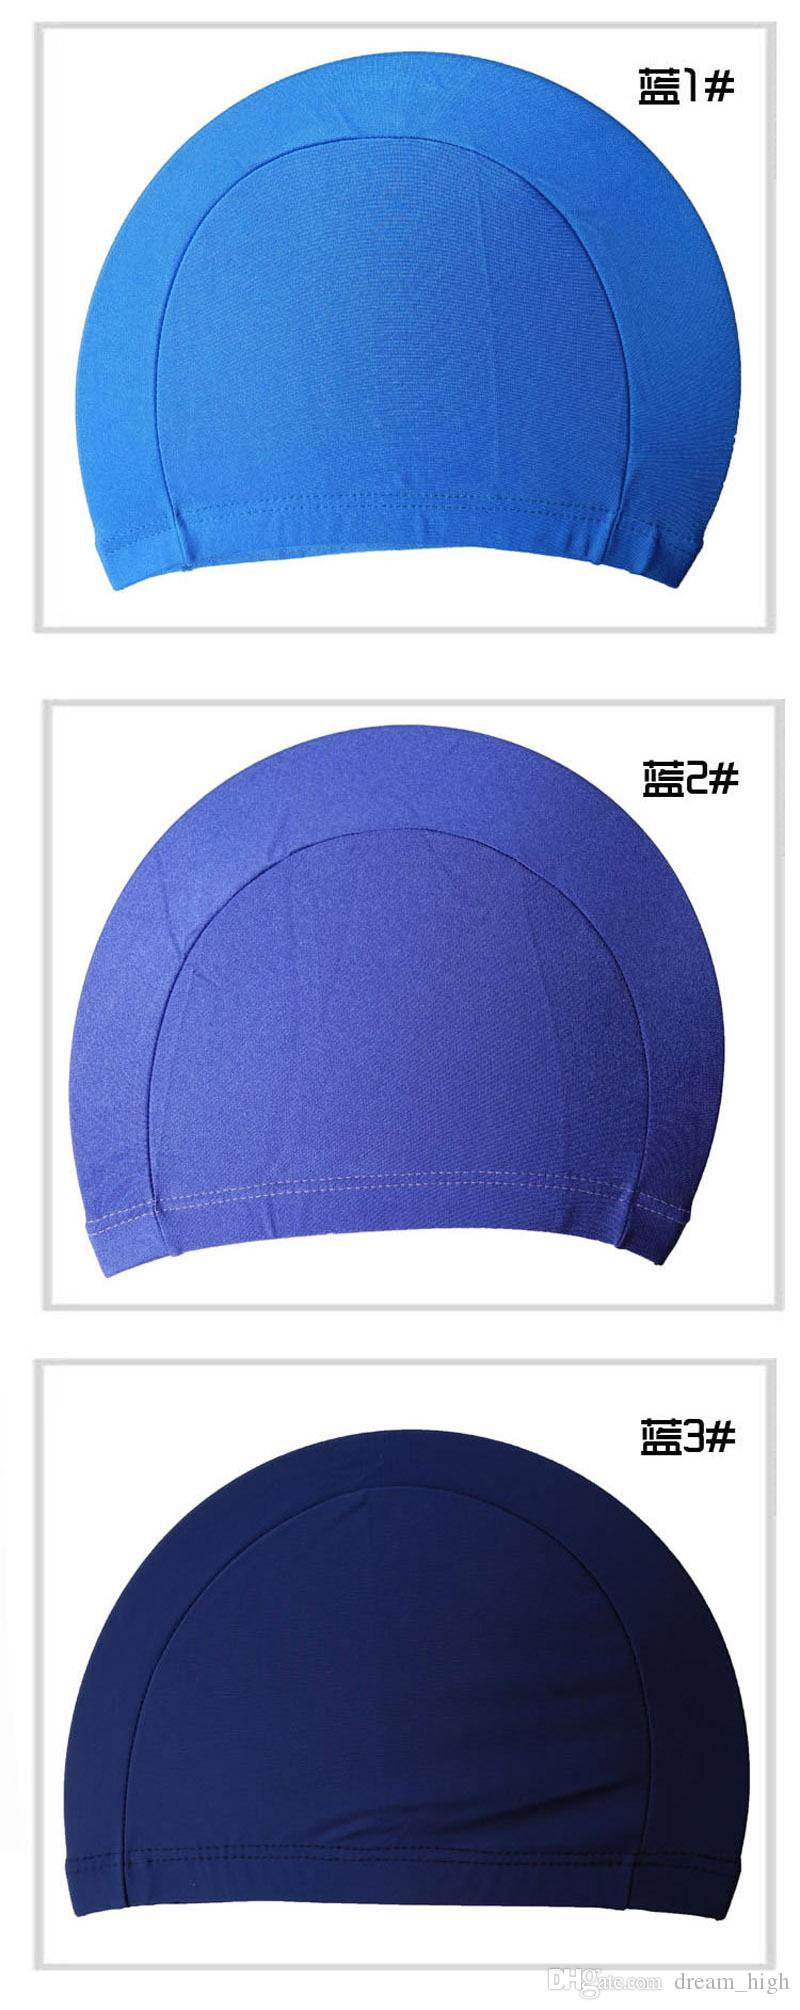 Stretch fabric color Nylon quality comfort adult Swim Cap Flexible Durable Elasticity Portable Swimming Hat For Men Women